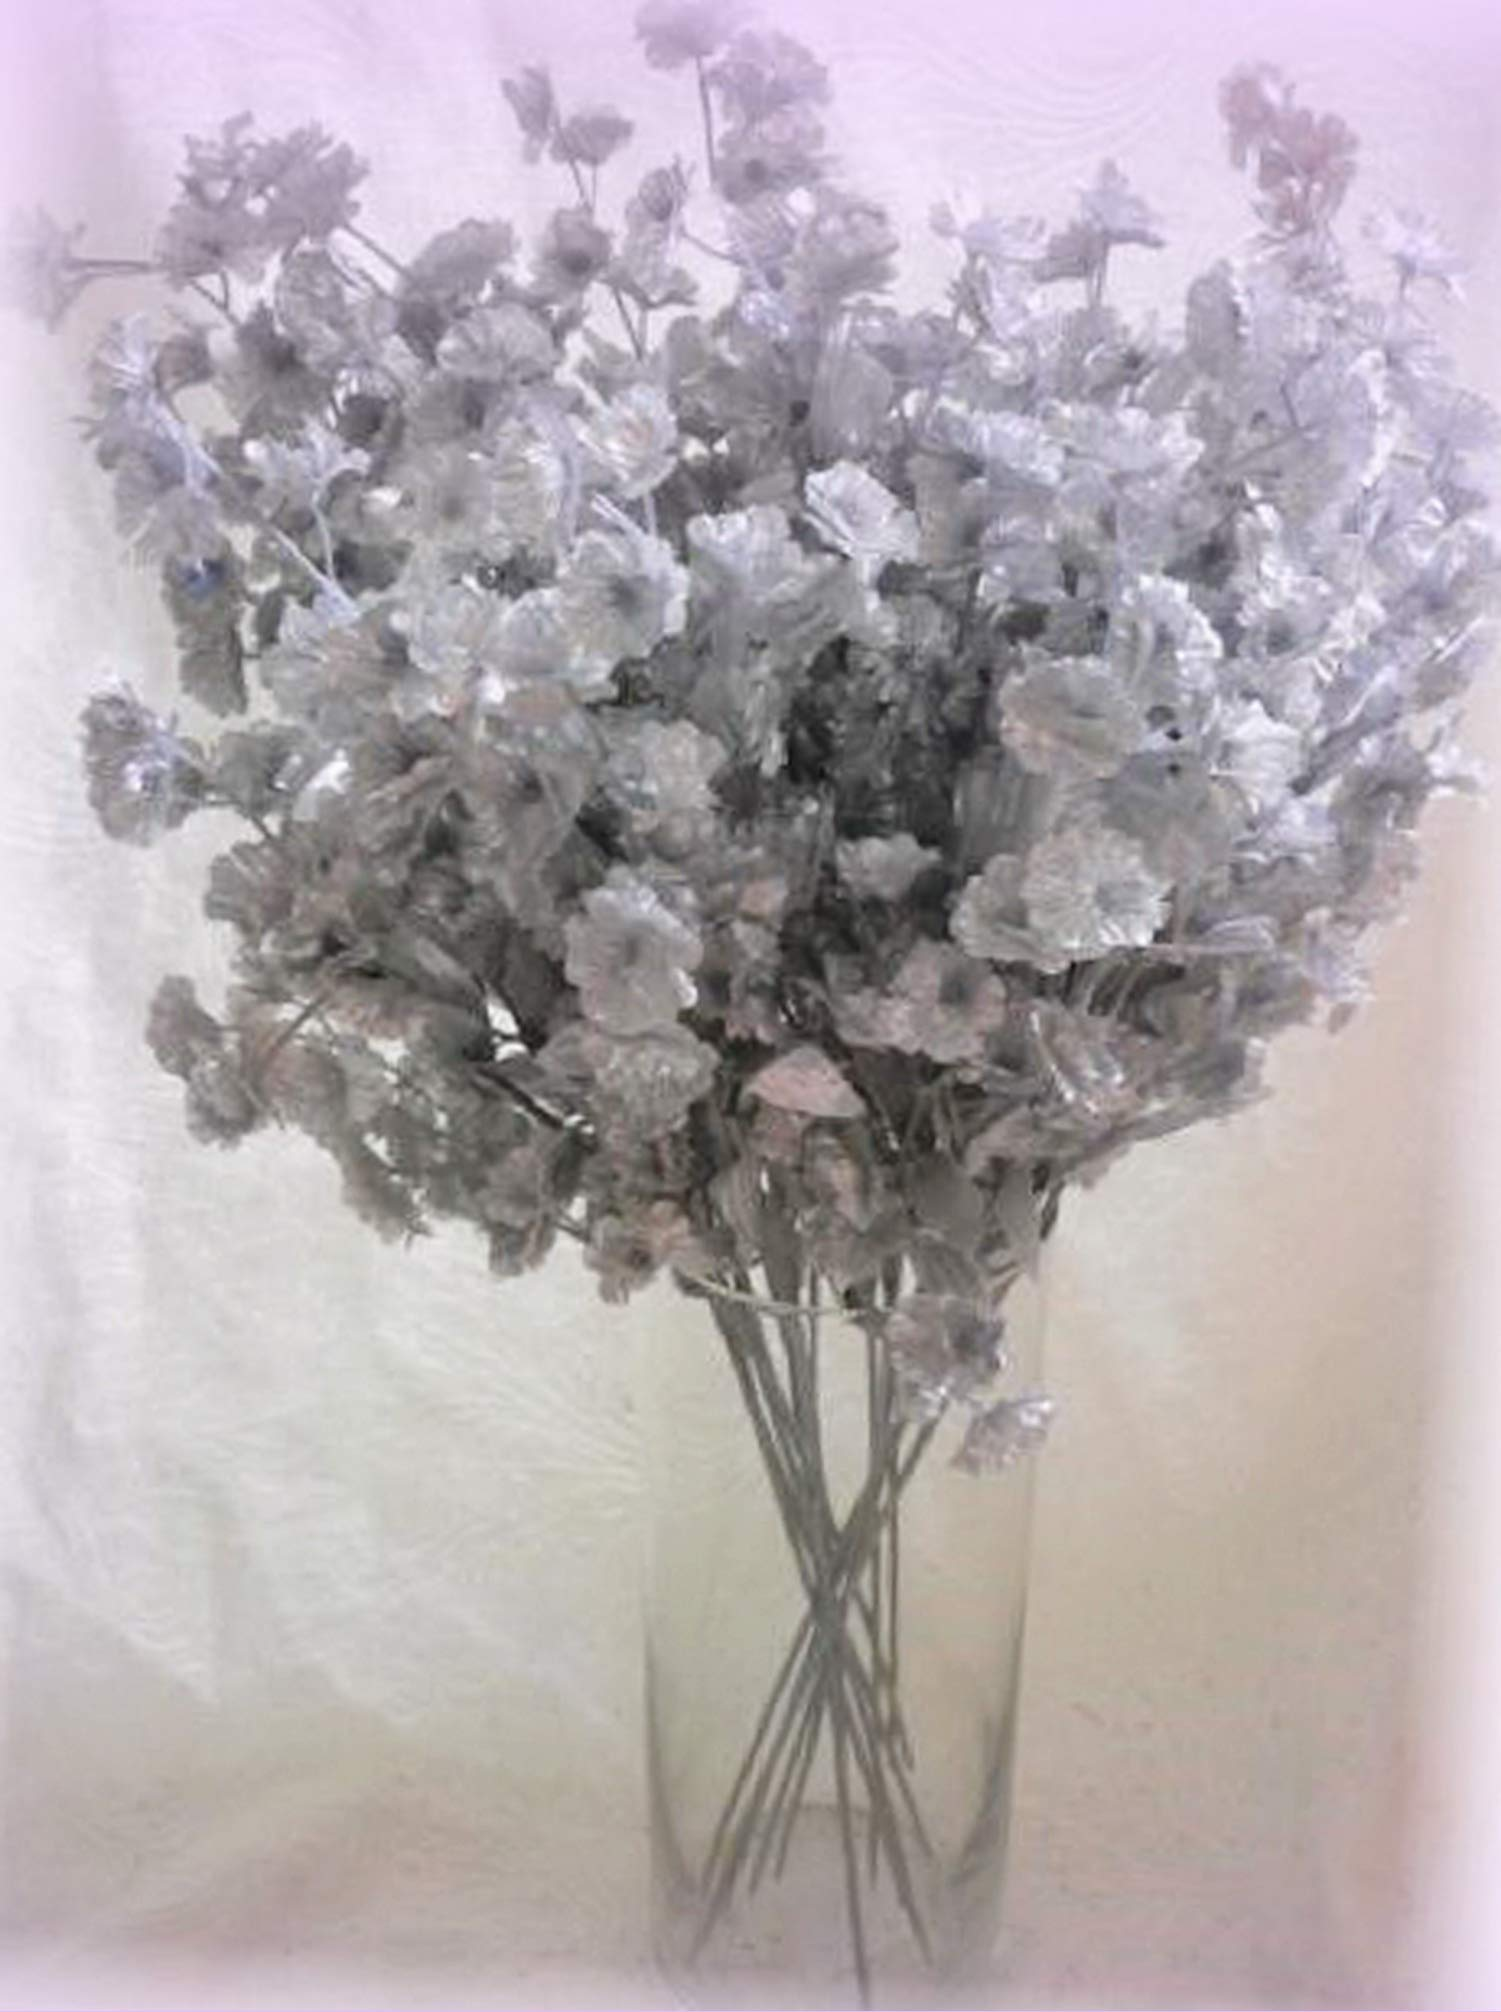 Inna-Wholesale-Art-Crafts-New-12-Silver-Silk-Babys-Breath-Bouquet-Spray-Decorating-Flowers-Fillers-Perfect-for-Any-Wedding-Special-Occasion-or-Home-Office-Dcor